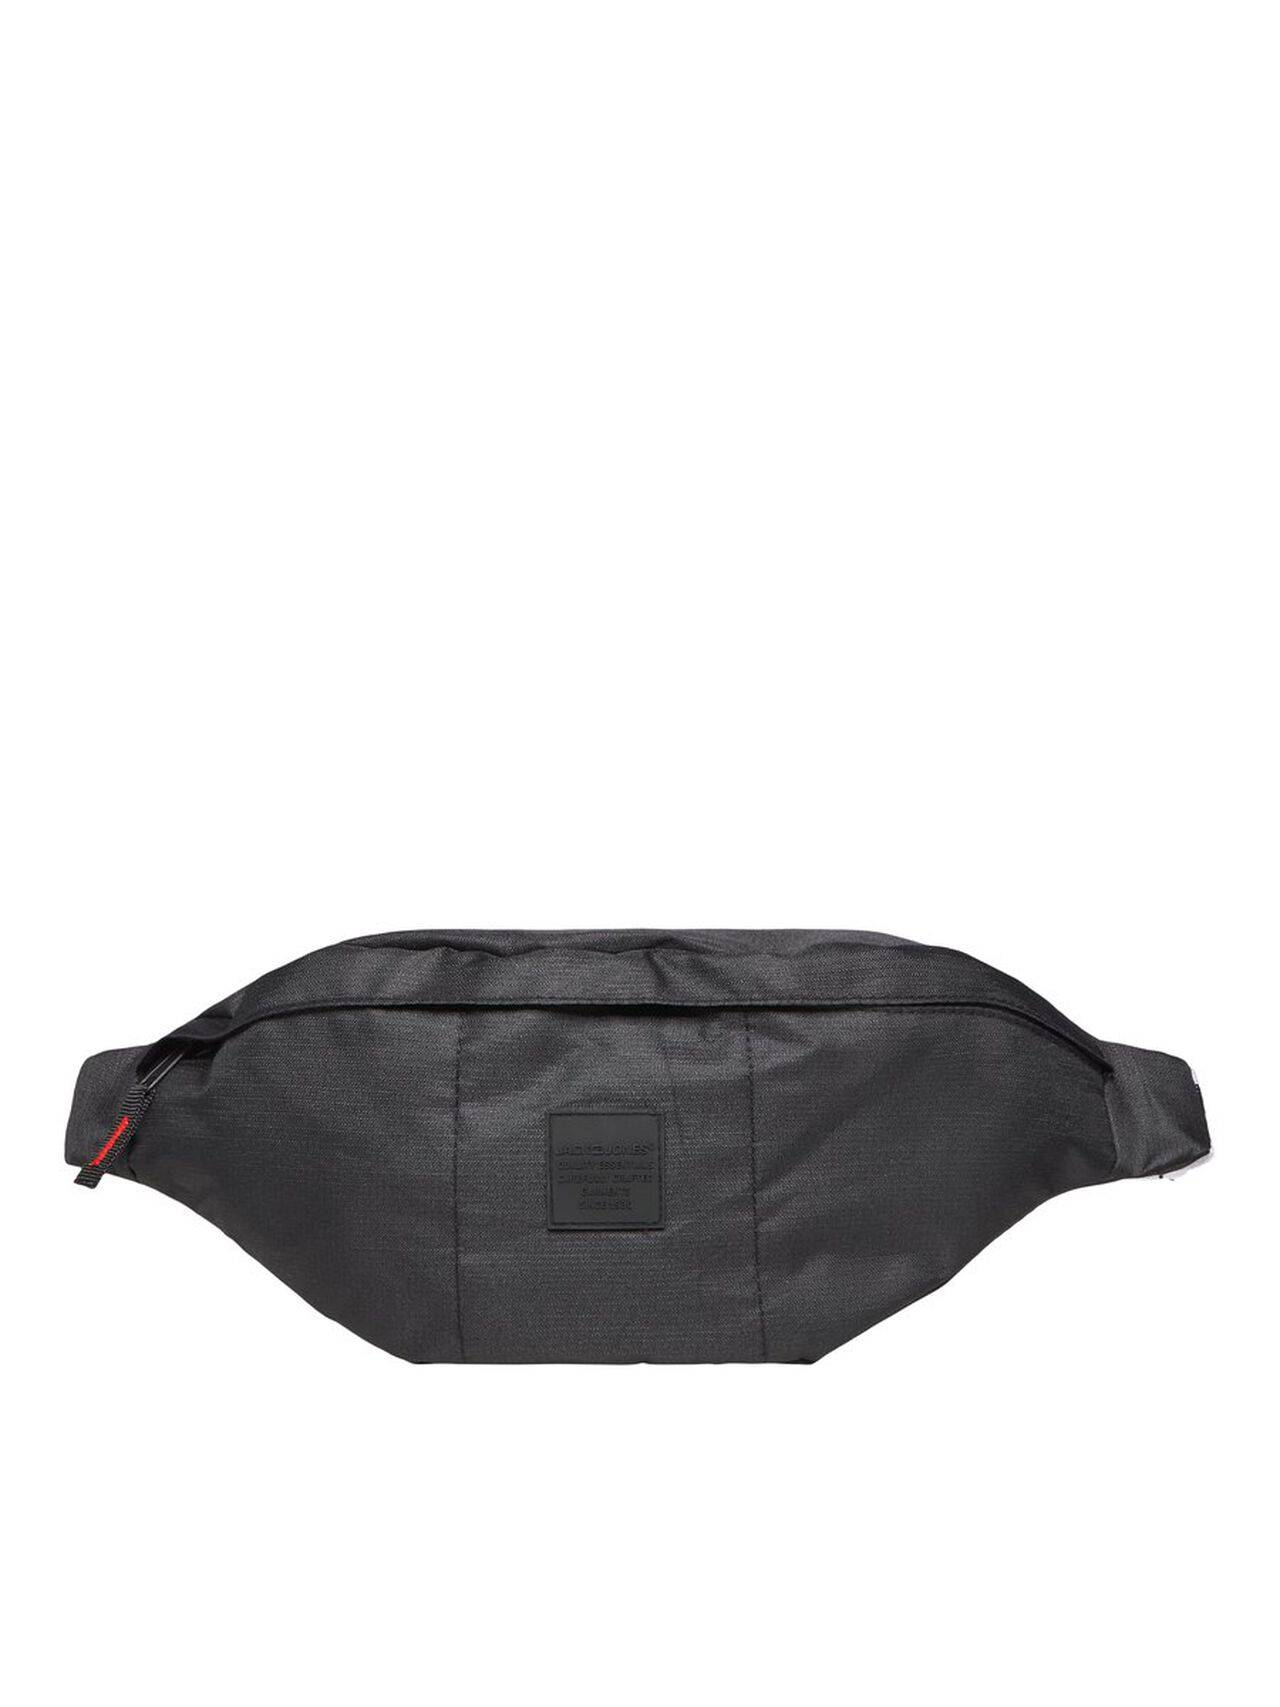 JACK & JONES Handy Bum Bum Bag Men Black Black